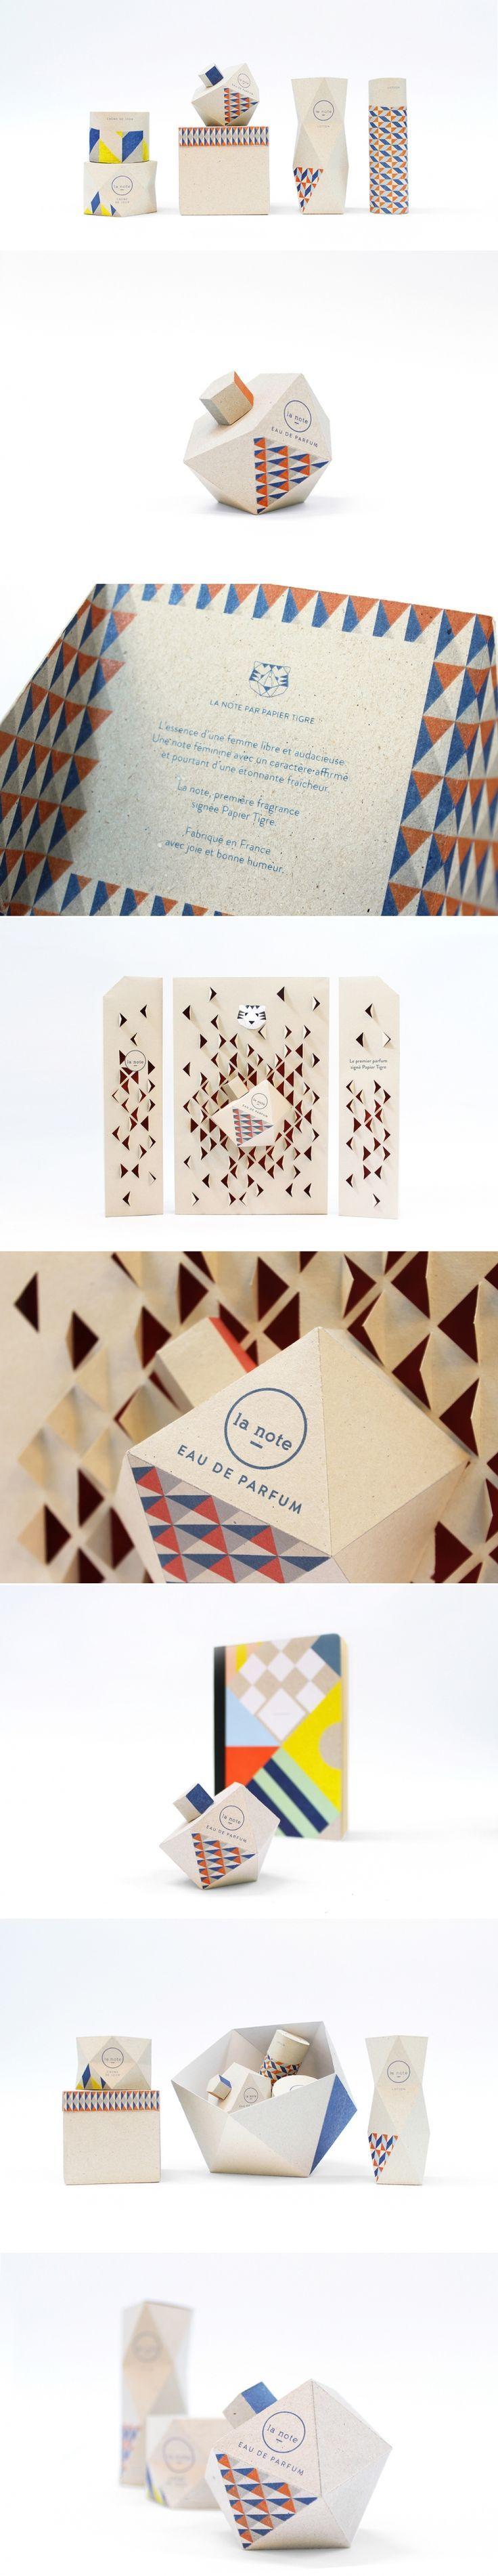 Paper Tigre — The Dieline | Packaging & Branding Design & Innovation News